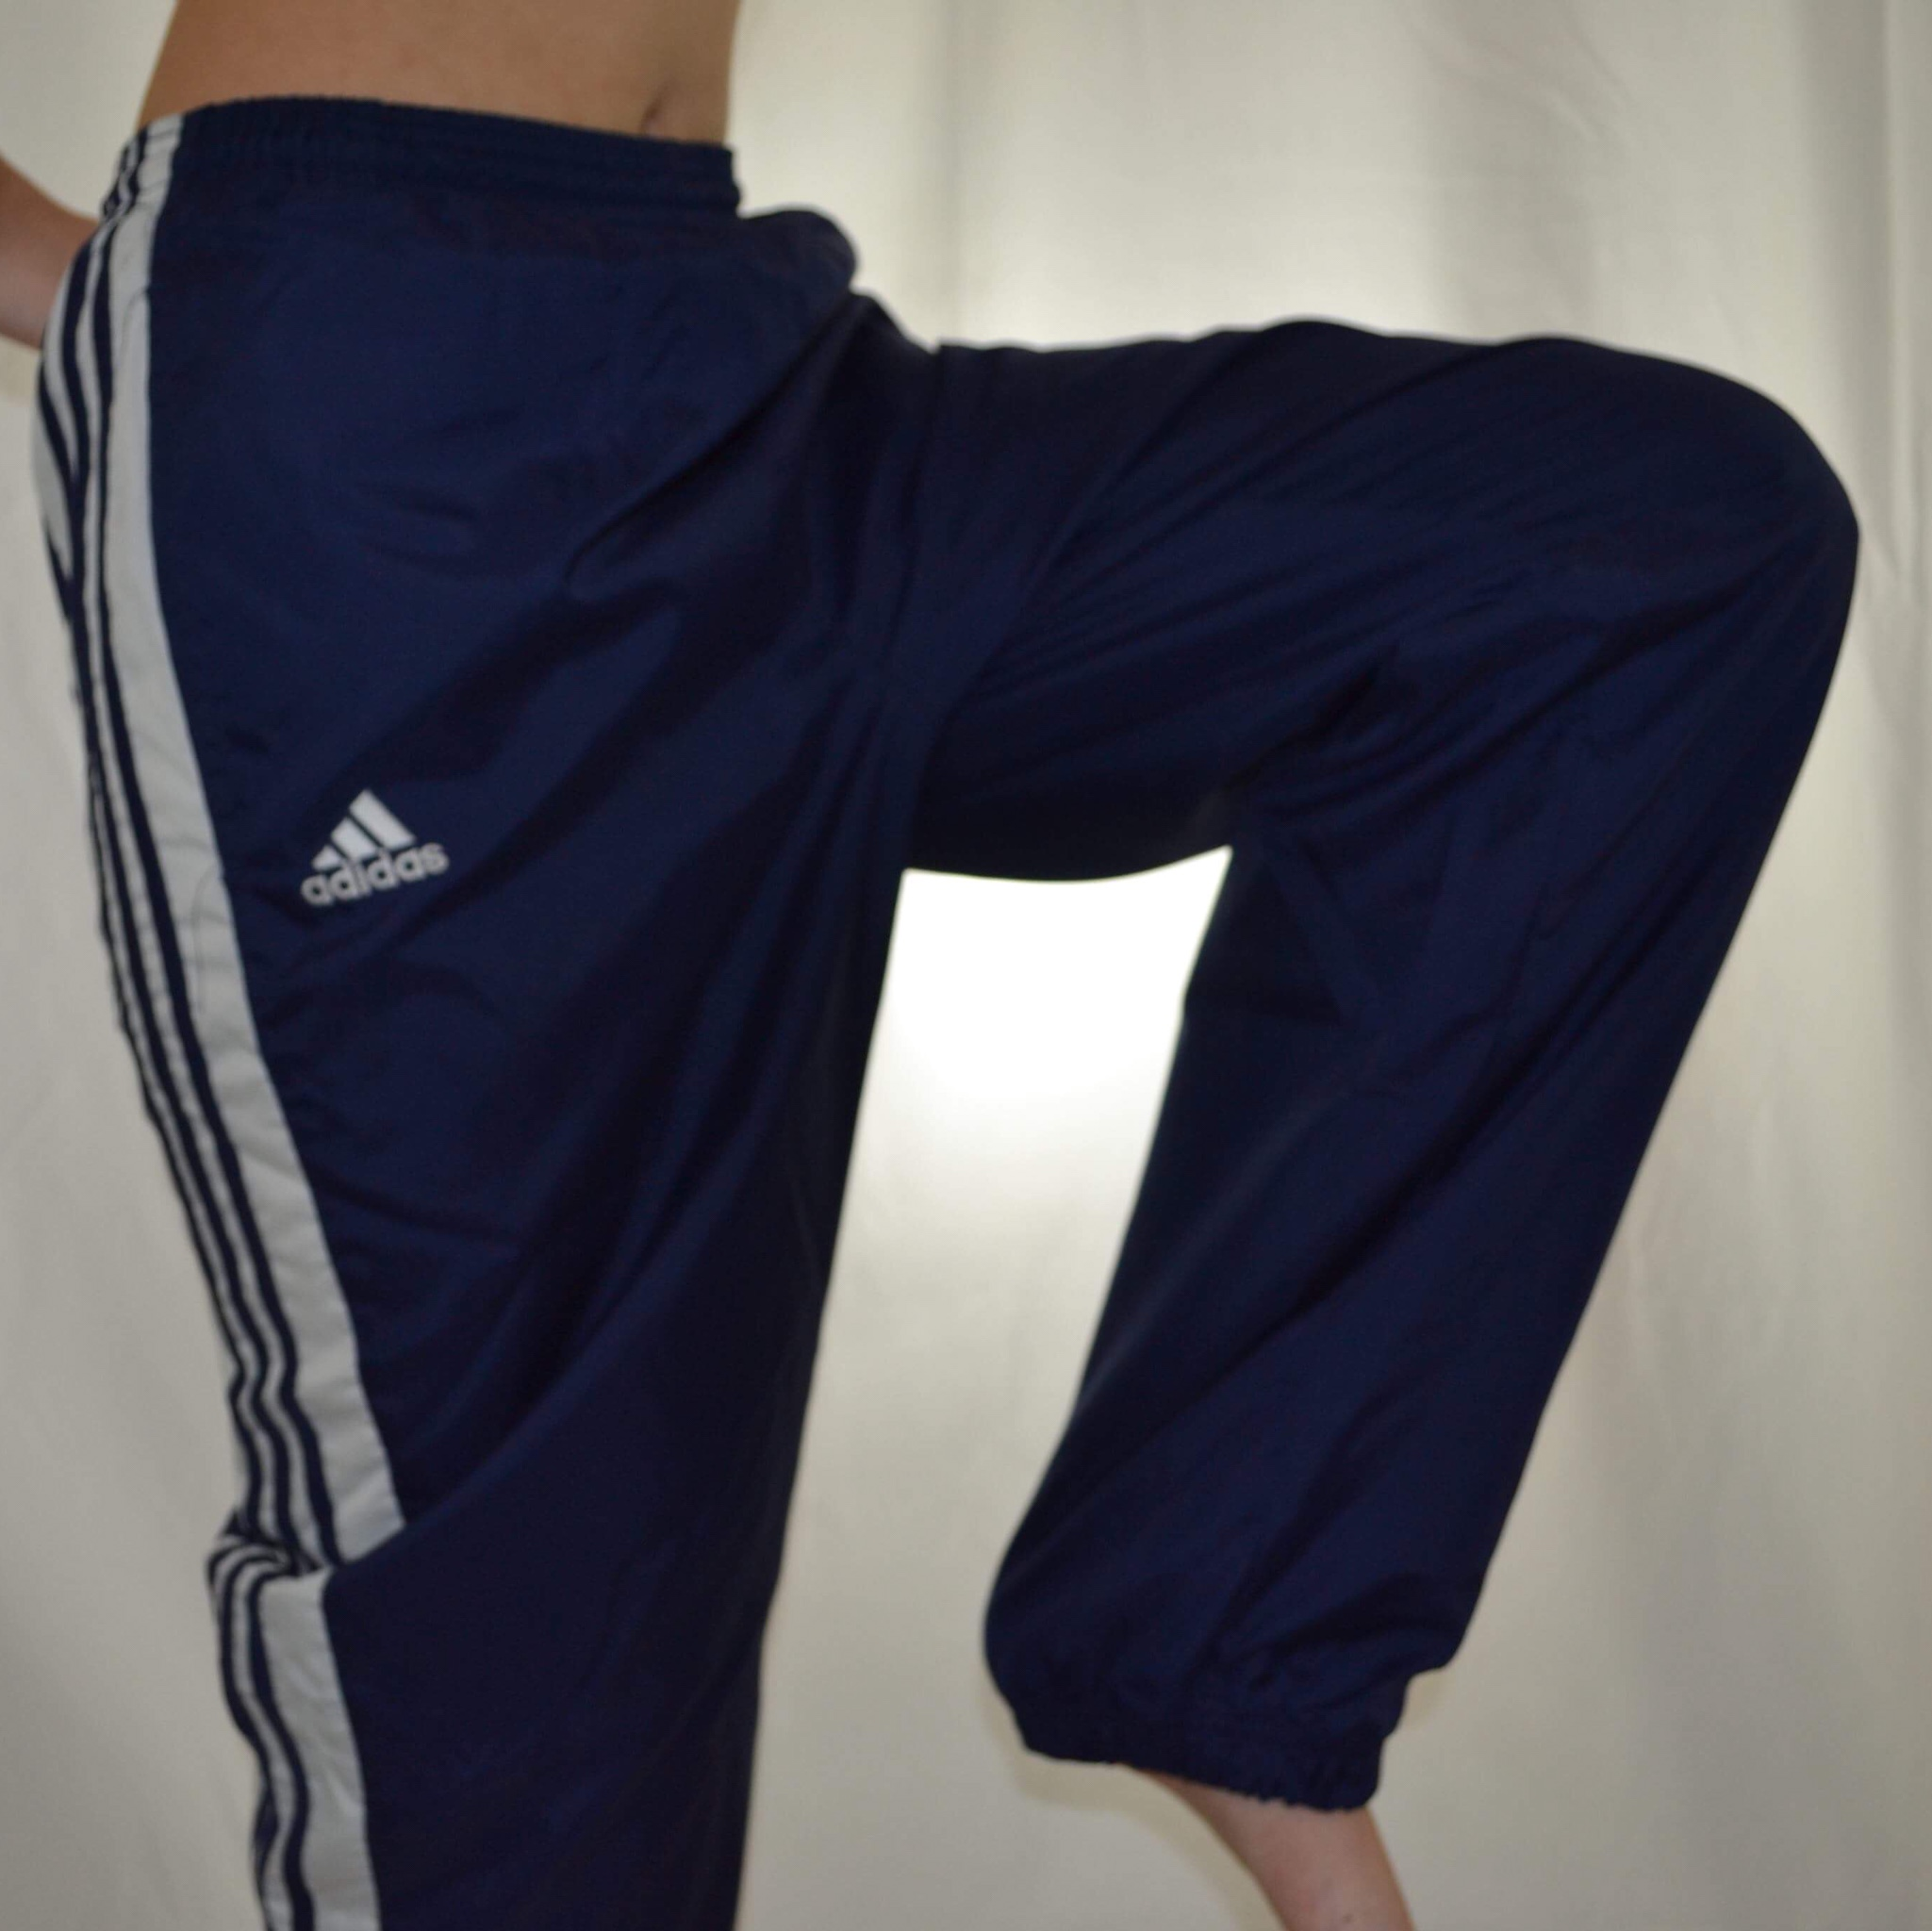 Adidas navy blue and white track pants. Men's... - Depop